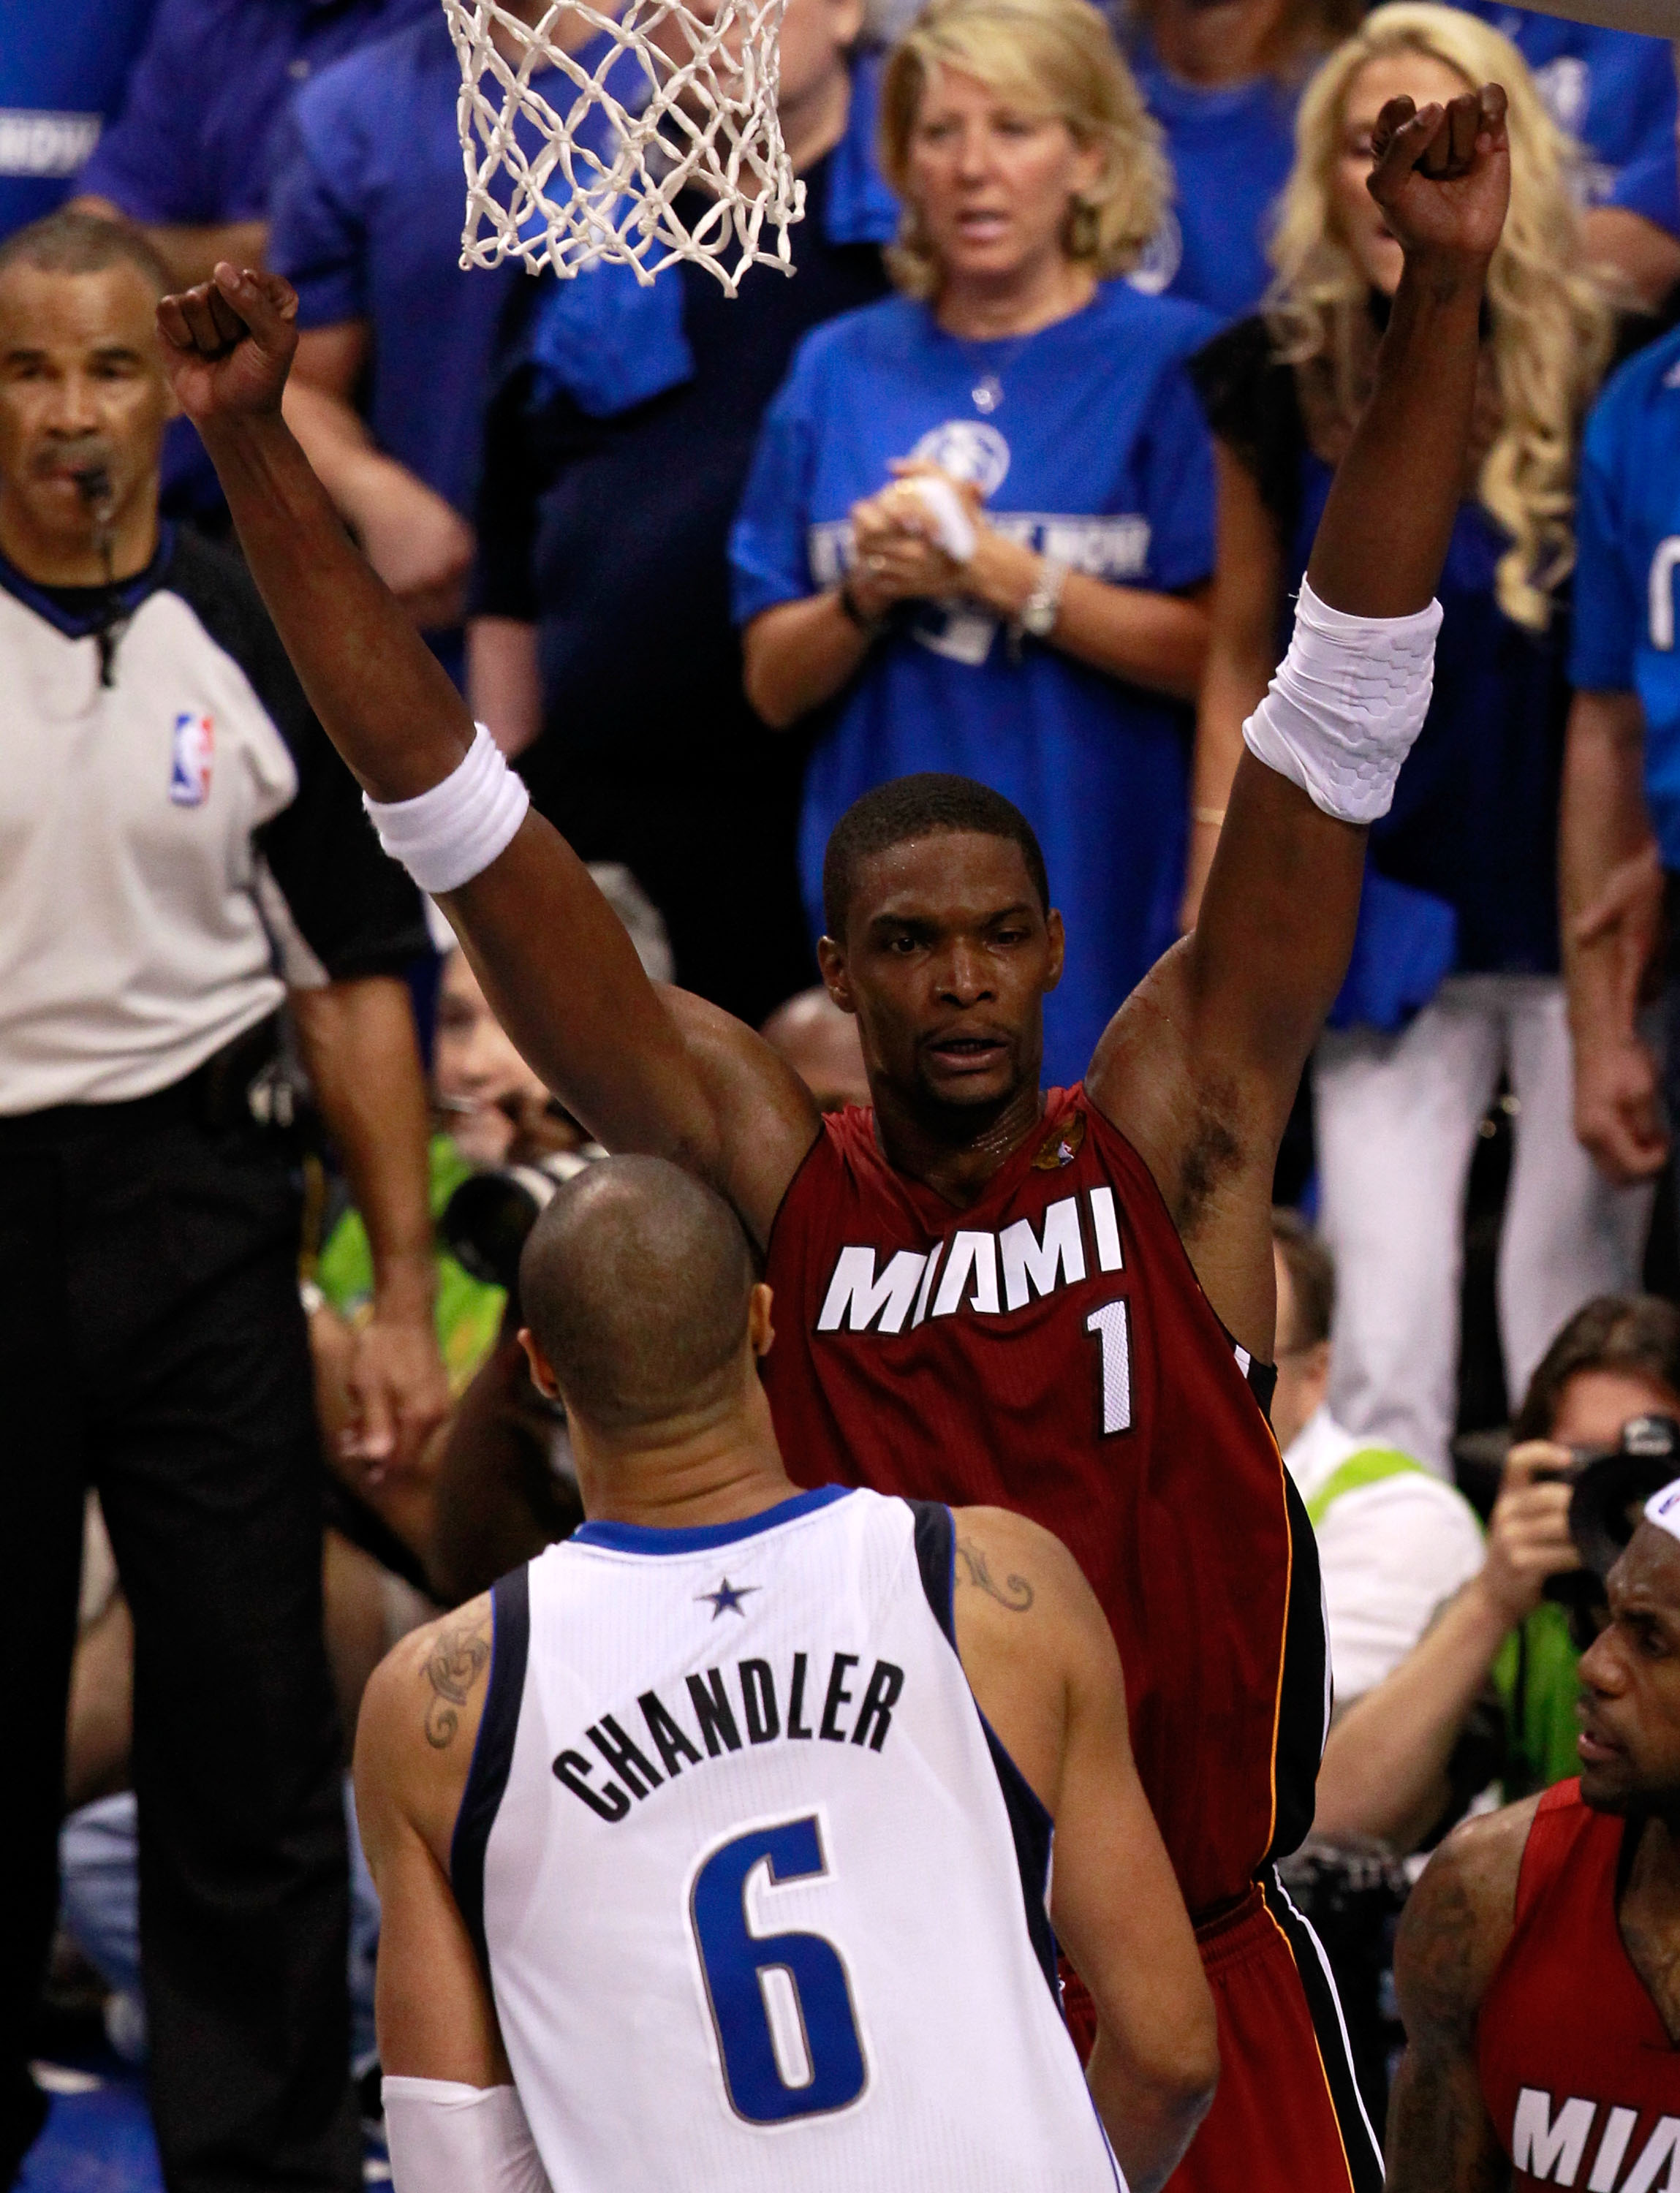 DALLAS, TX - JUNE 05:  Chris Bosh #1 of the Miami Heat celebrates against Tyson Chandler #6 of the Dallas Mavericks after the Heat won 88-86 in Game Three of the 2011 NBA Finals at American Airlines Center on June 5, 2011 in Dallas, Texas.  NOTE TO USER: